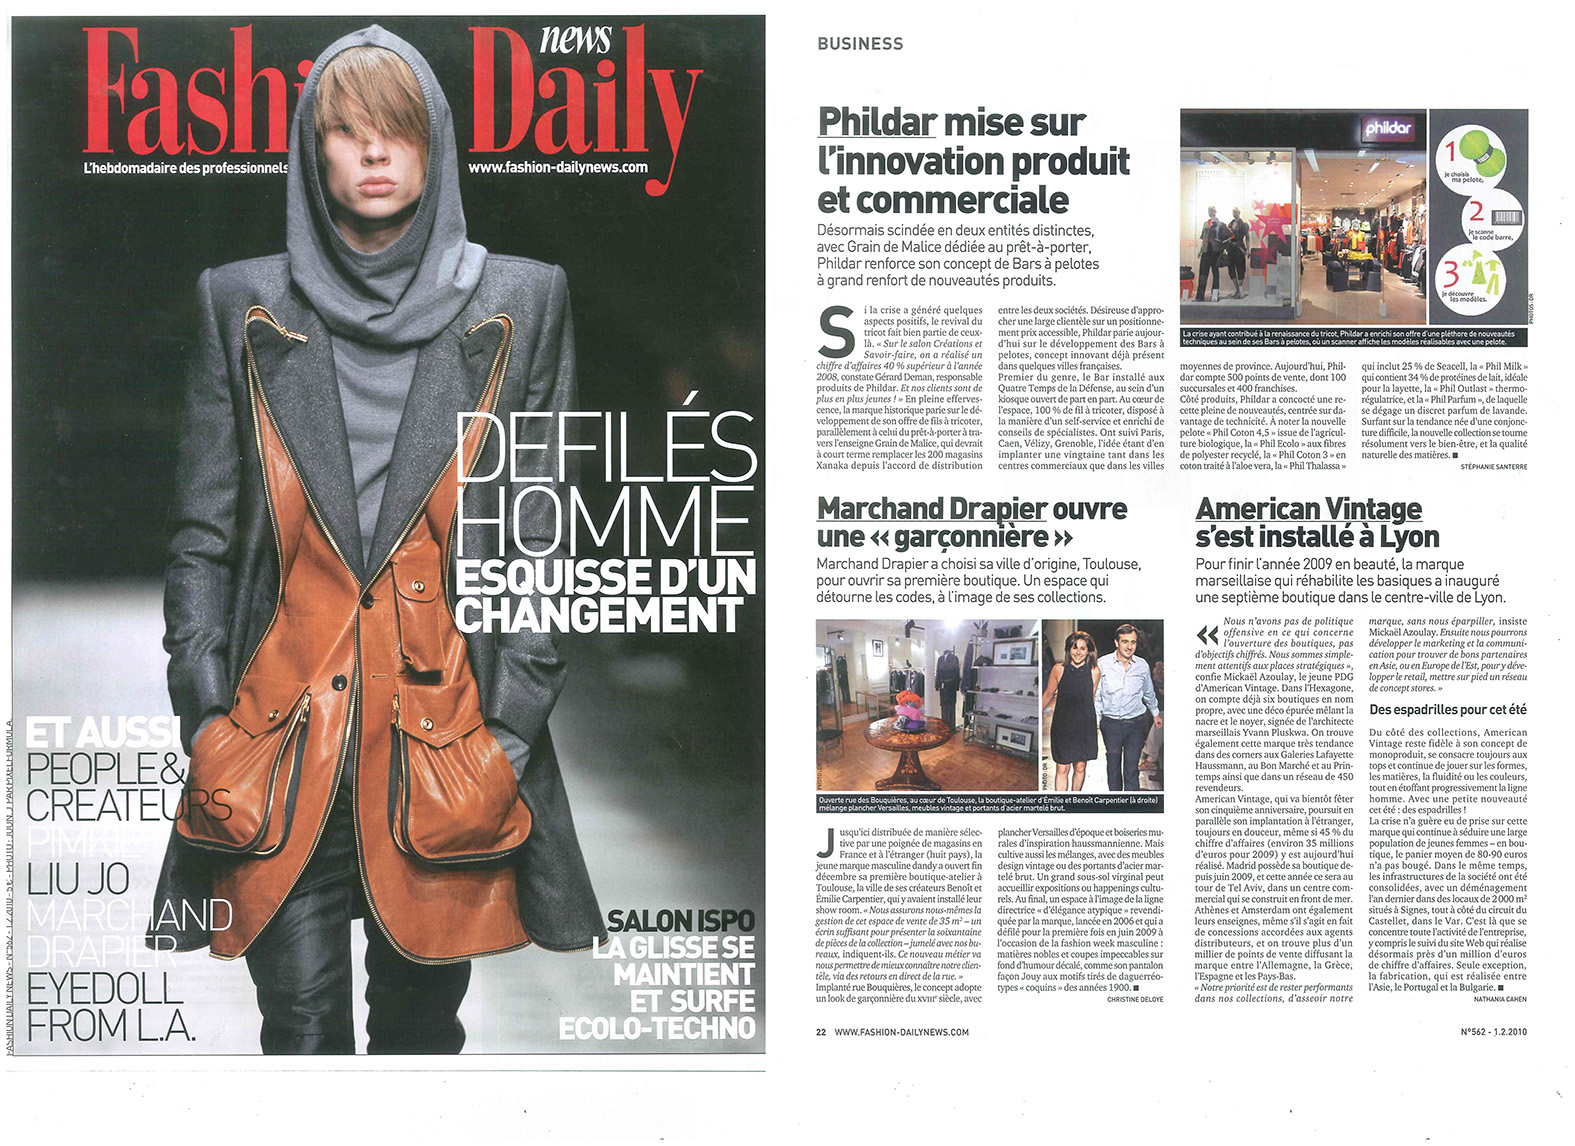 Fashion Daily News - Février 2010